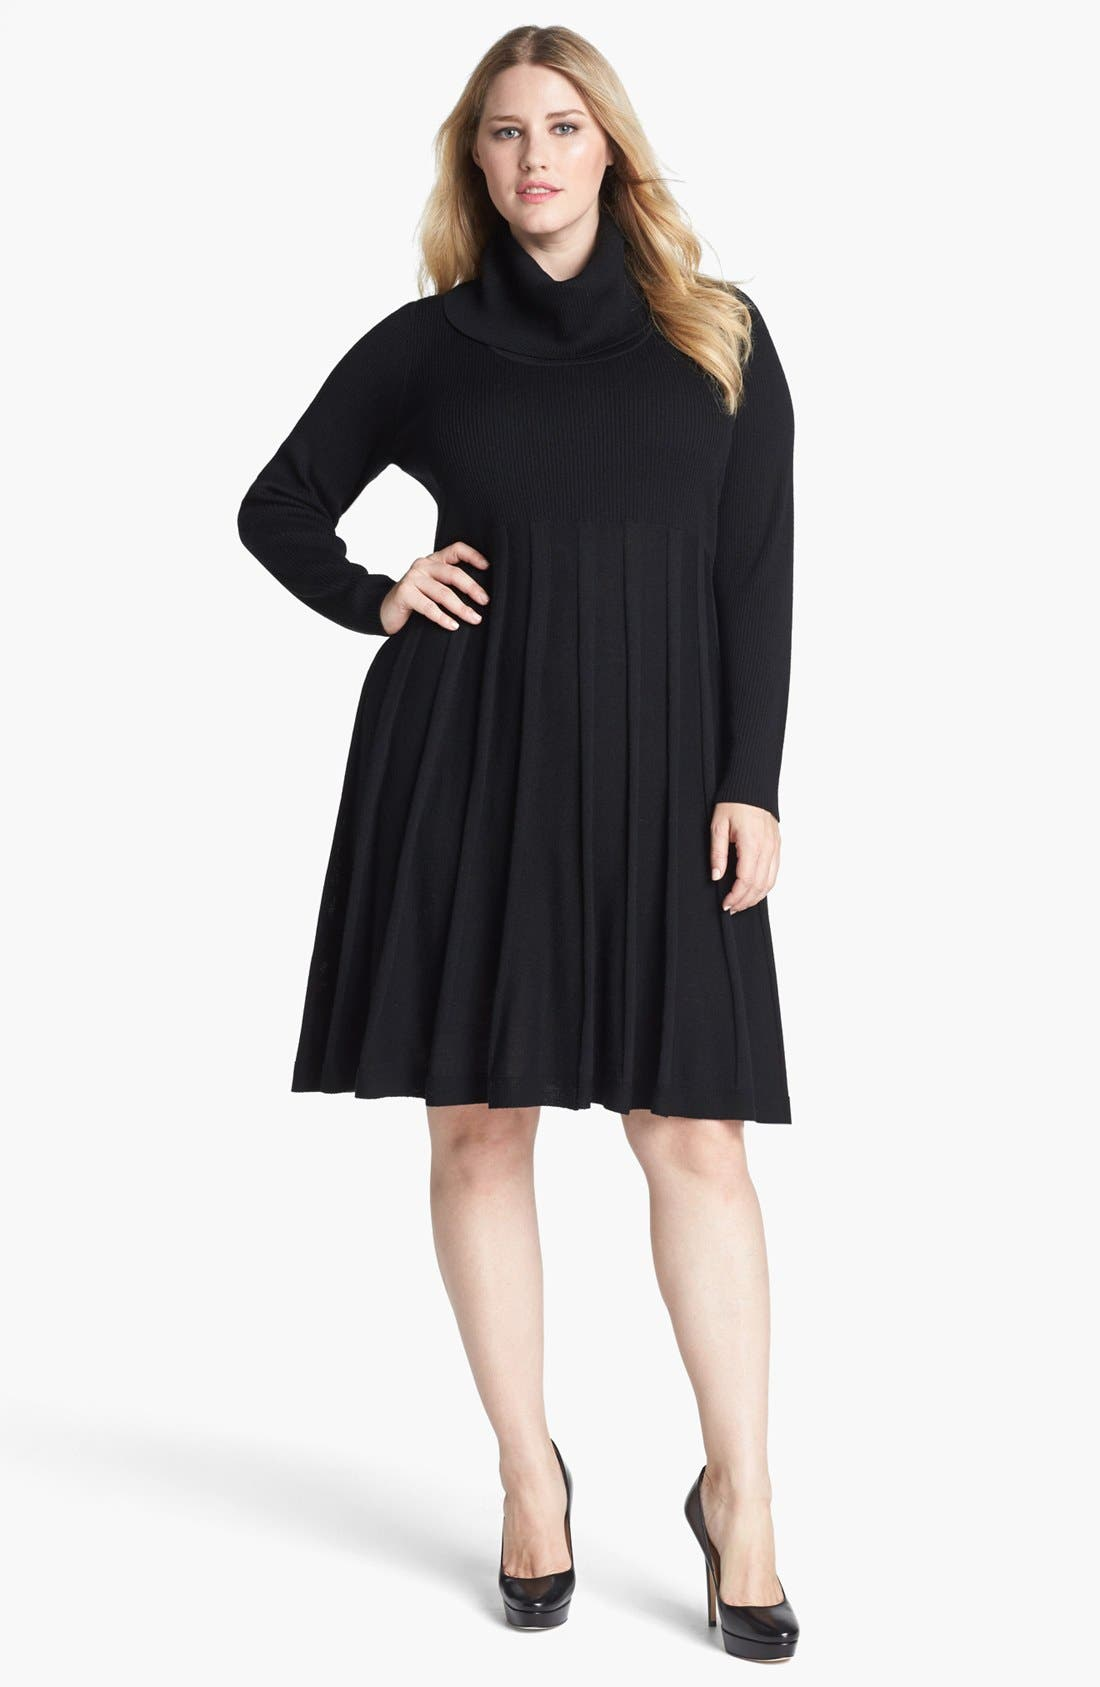 Alternate Image 1 Selected - Calvin Klein Fit & Flare Sweater Dress (Plus Size)